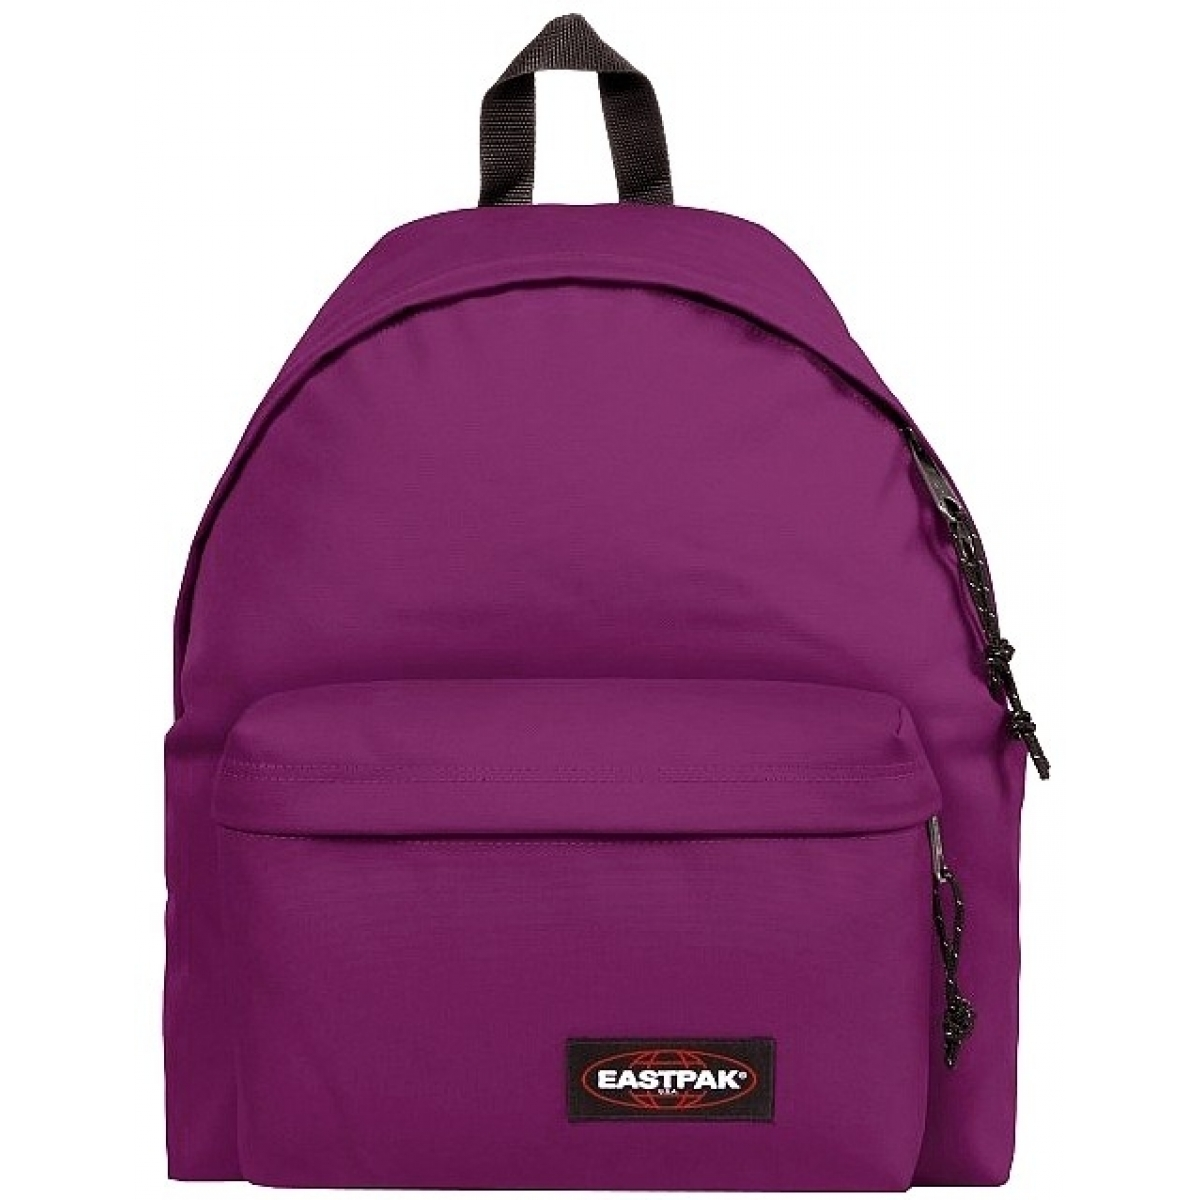 sac dos scolaire eastpak ek620 power purple ek62028t couleur principale assortis. Black Bedroom Furniture Sets. Home Design Ideas